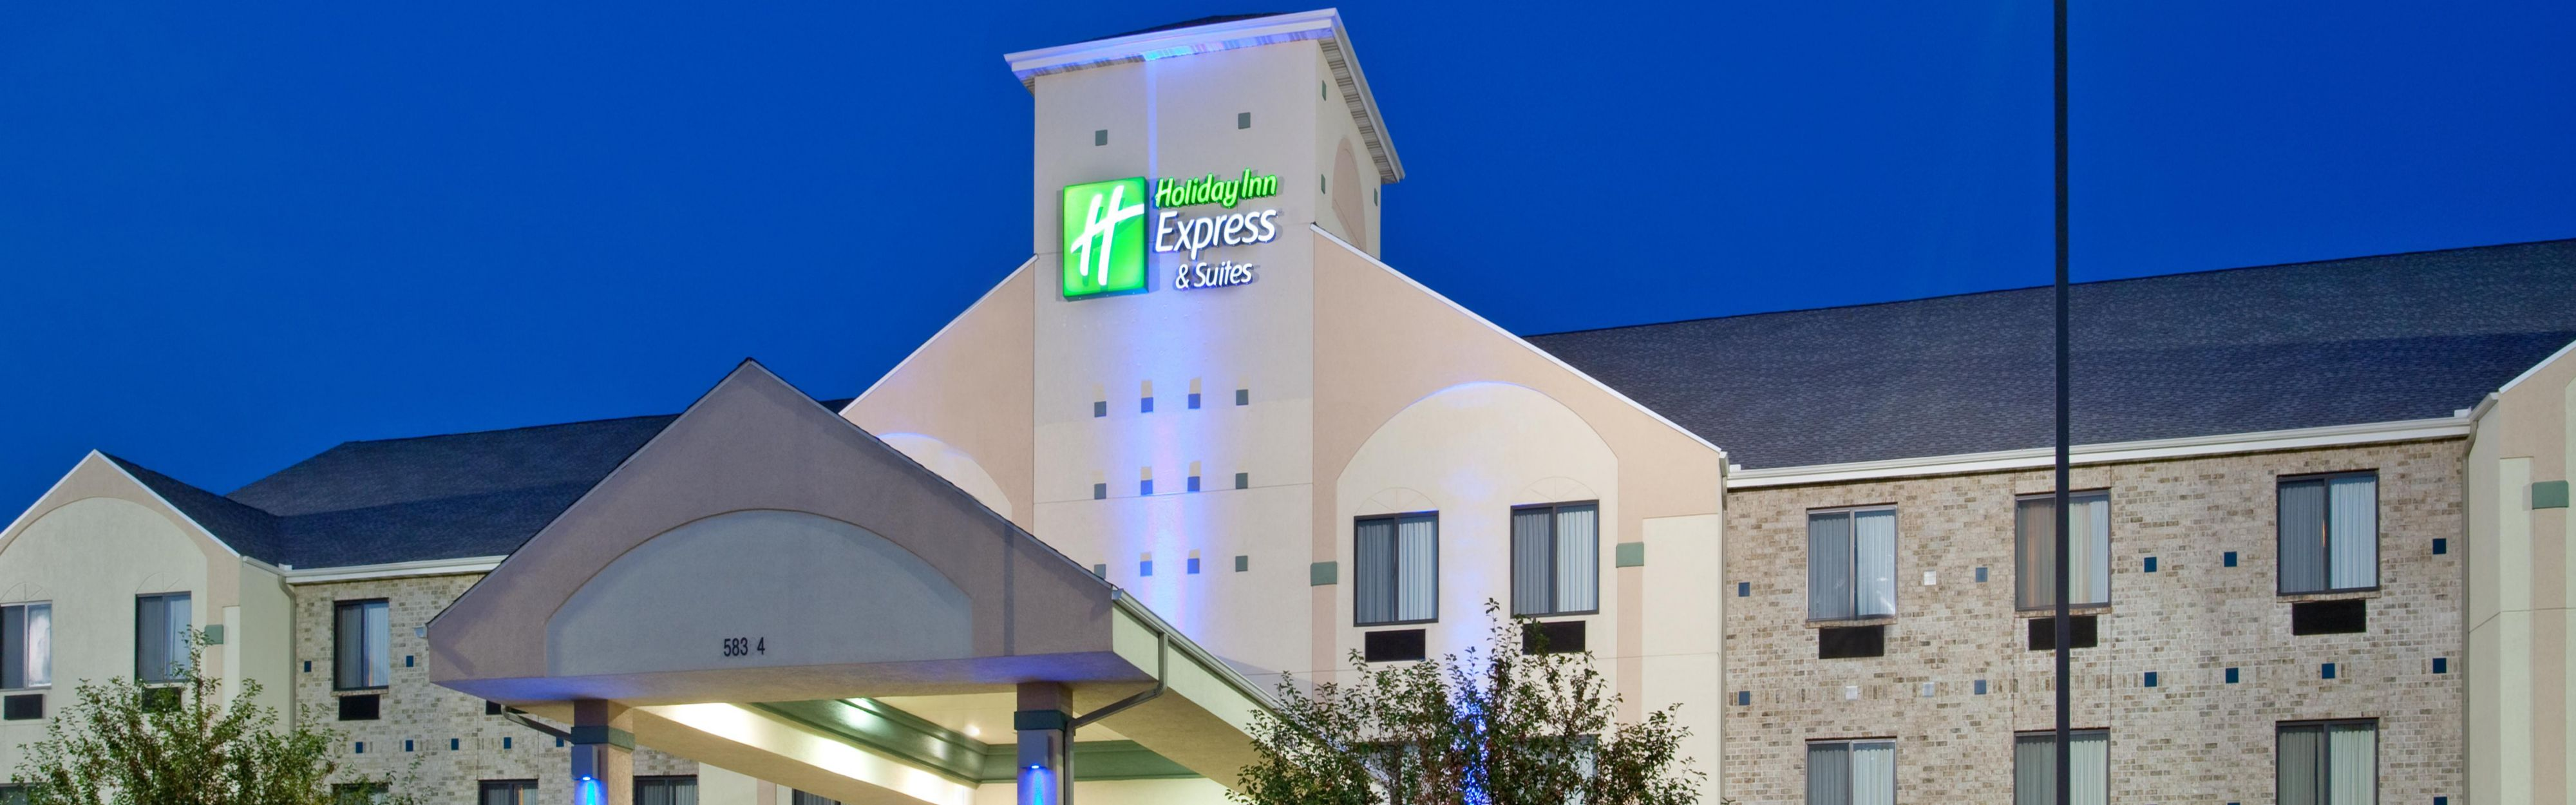 Holiday Inn Express & Suites Elkhart-South image 0